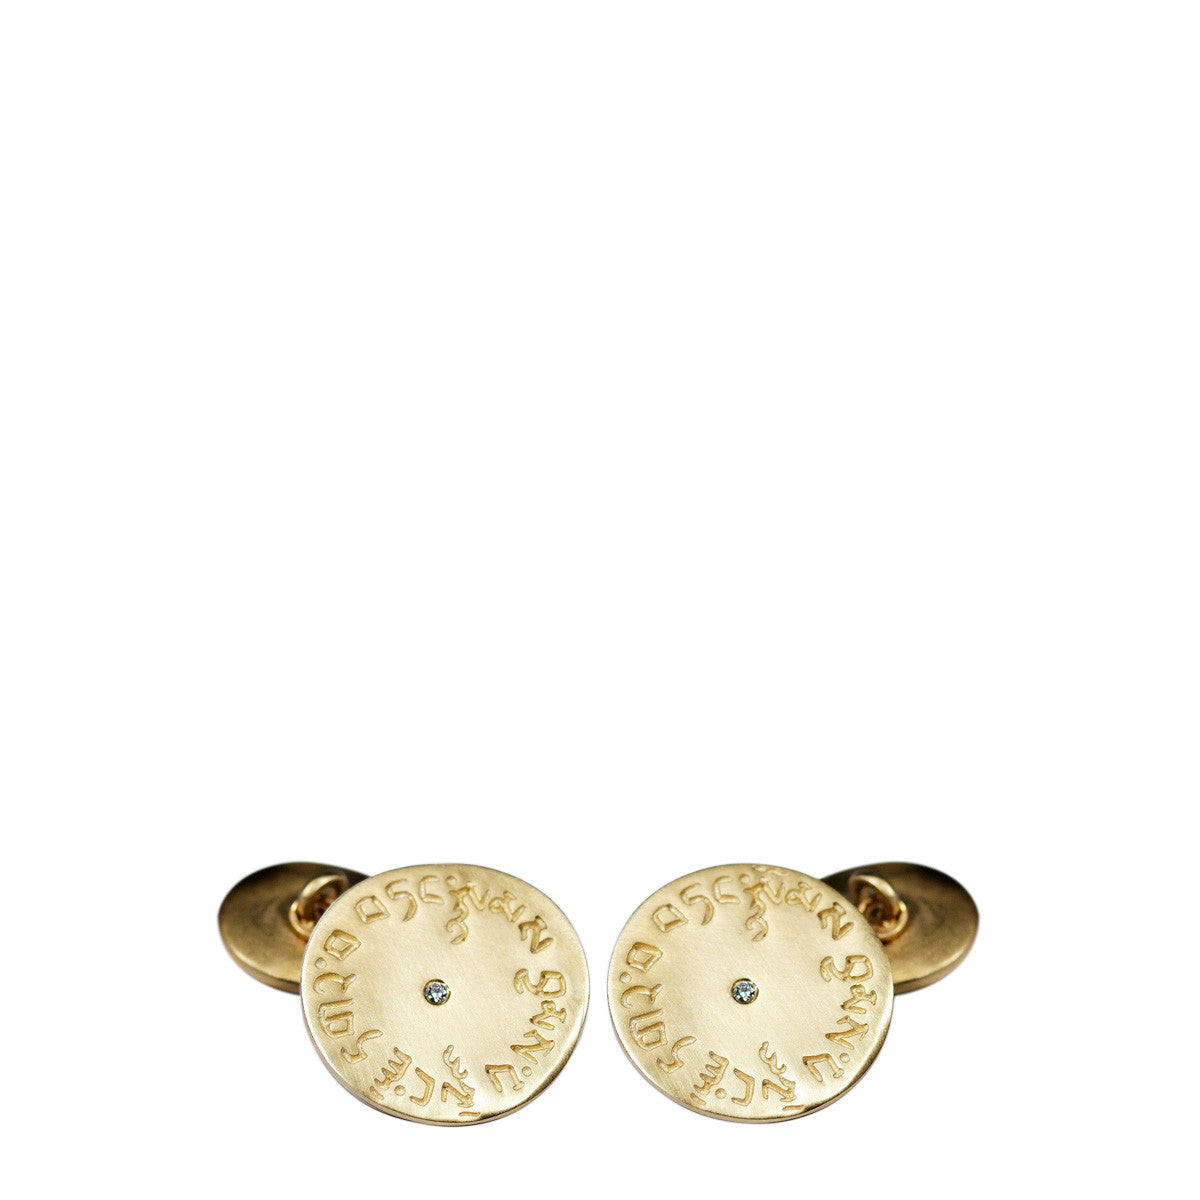 Men's 10K Gold 4 Immeasurables Cufflinks with Diamonds